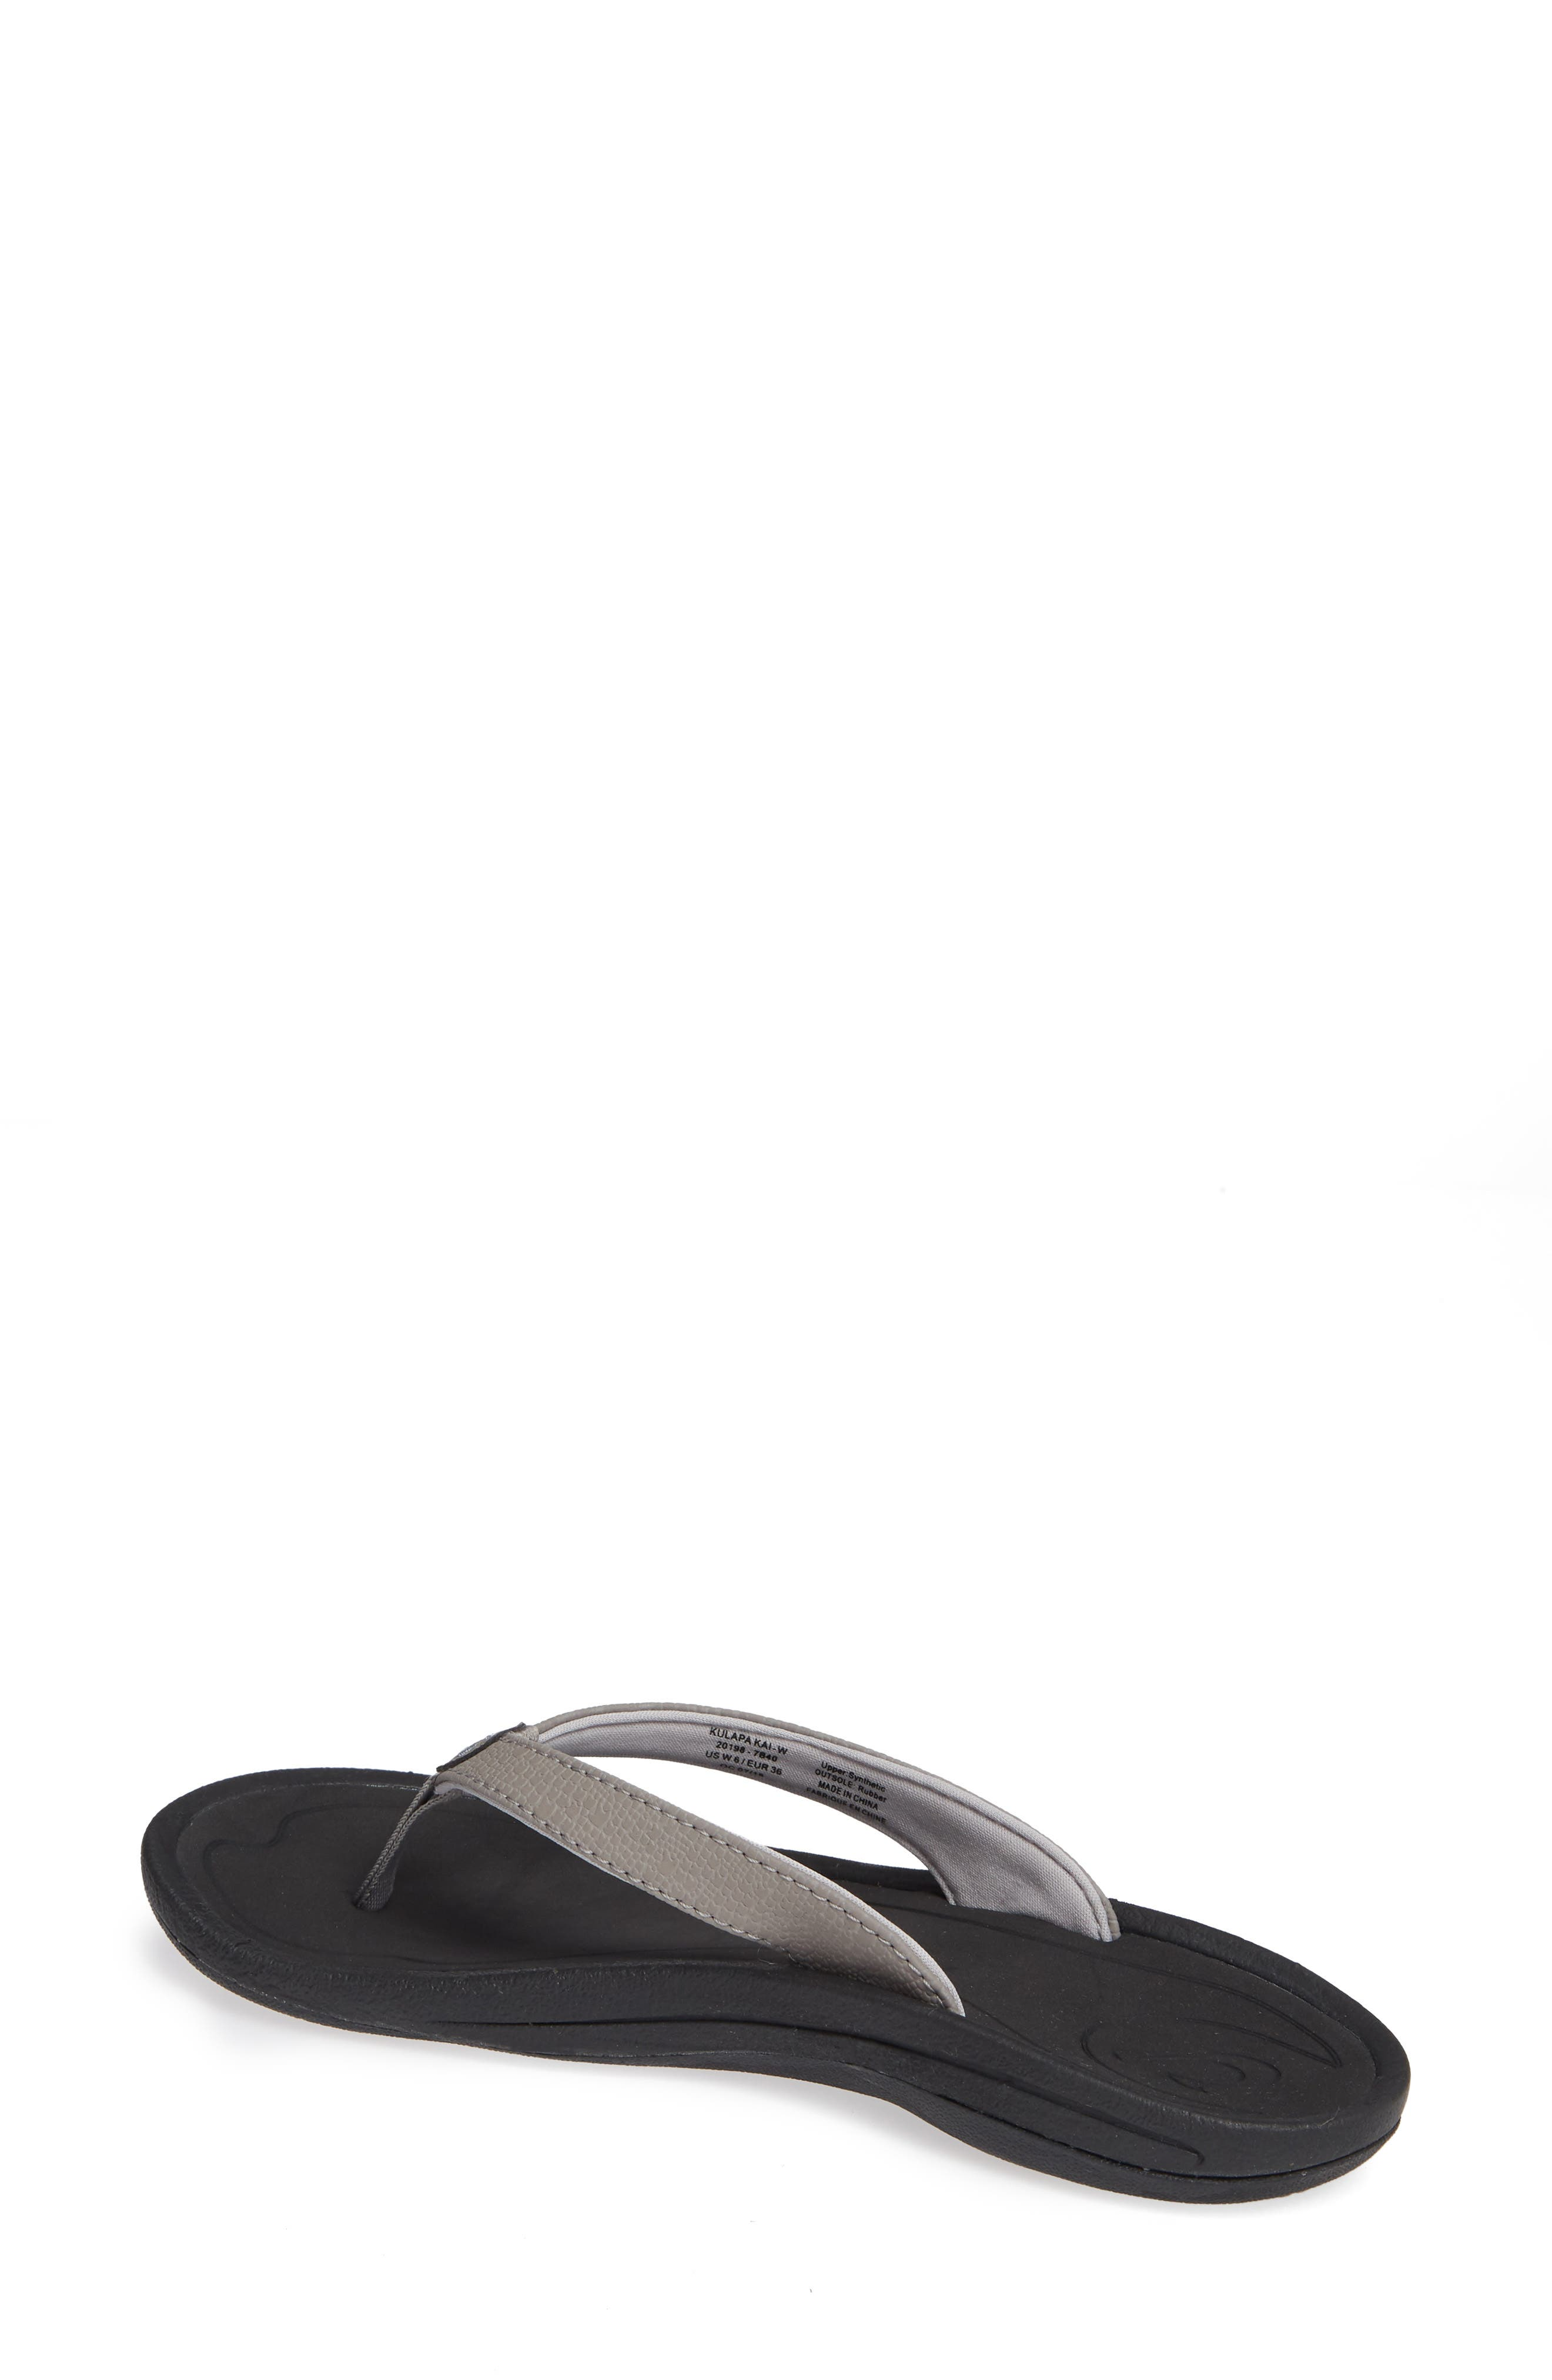 'Kulapa Kai' Thong Sandal,                             Alternate thumbnail 2, color,                             FOG/ BLACK FABRIC